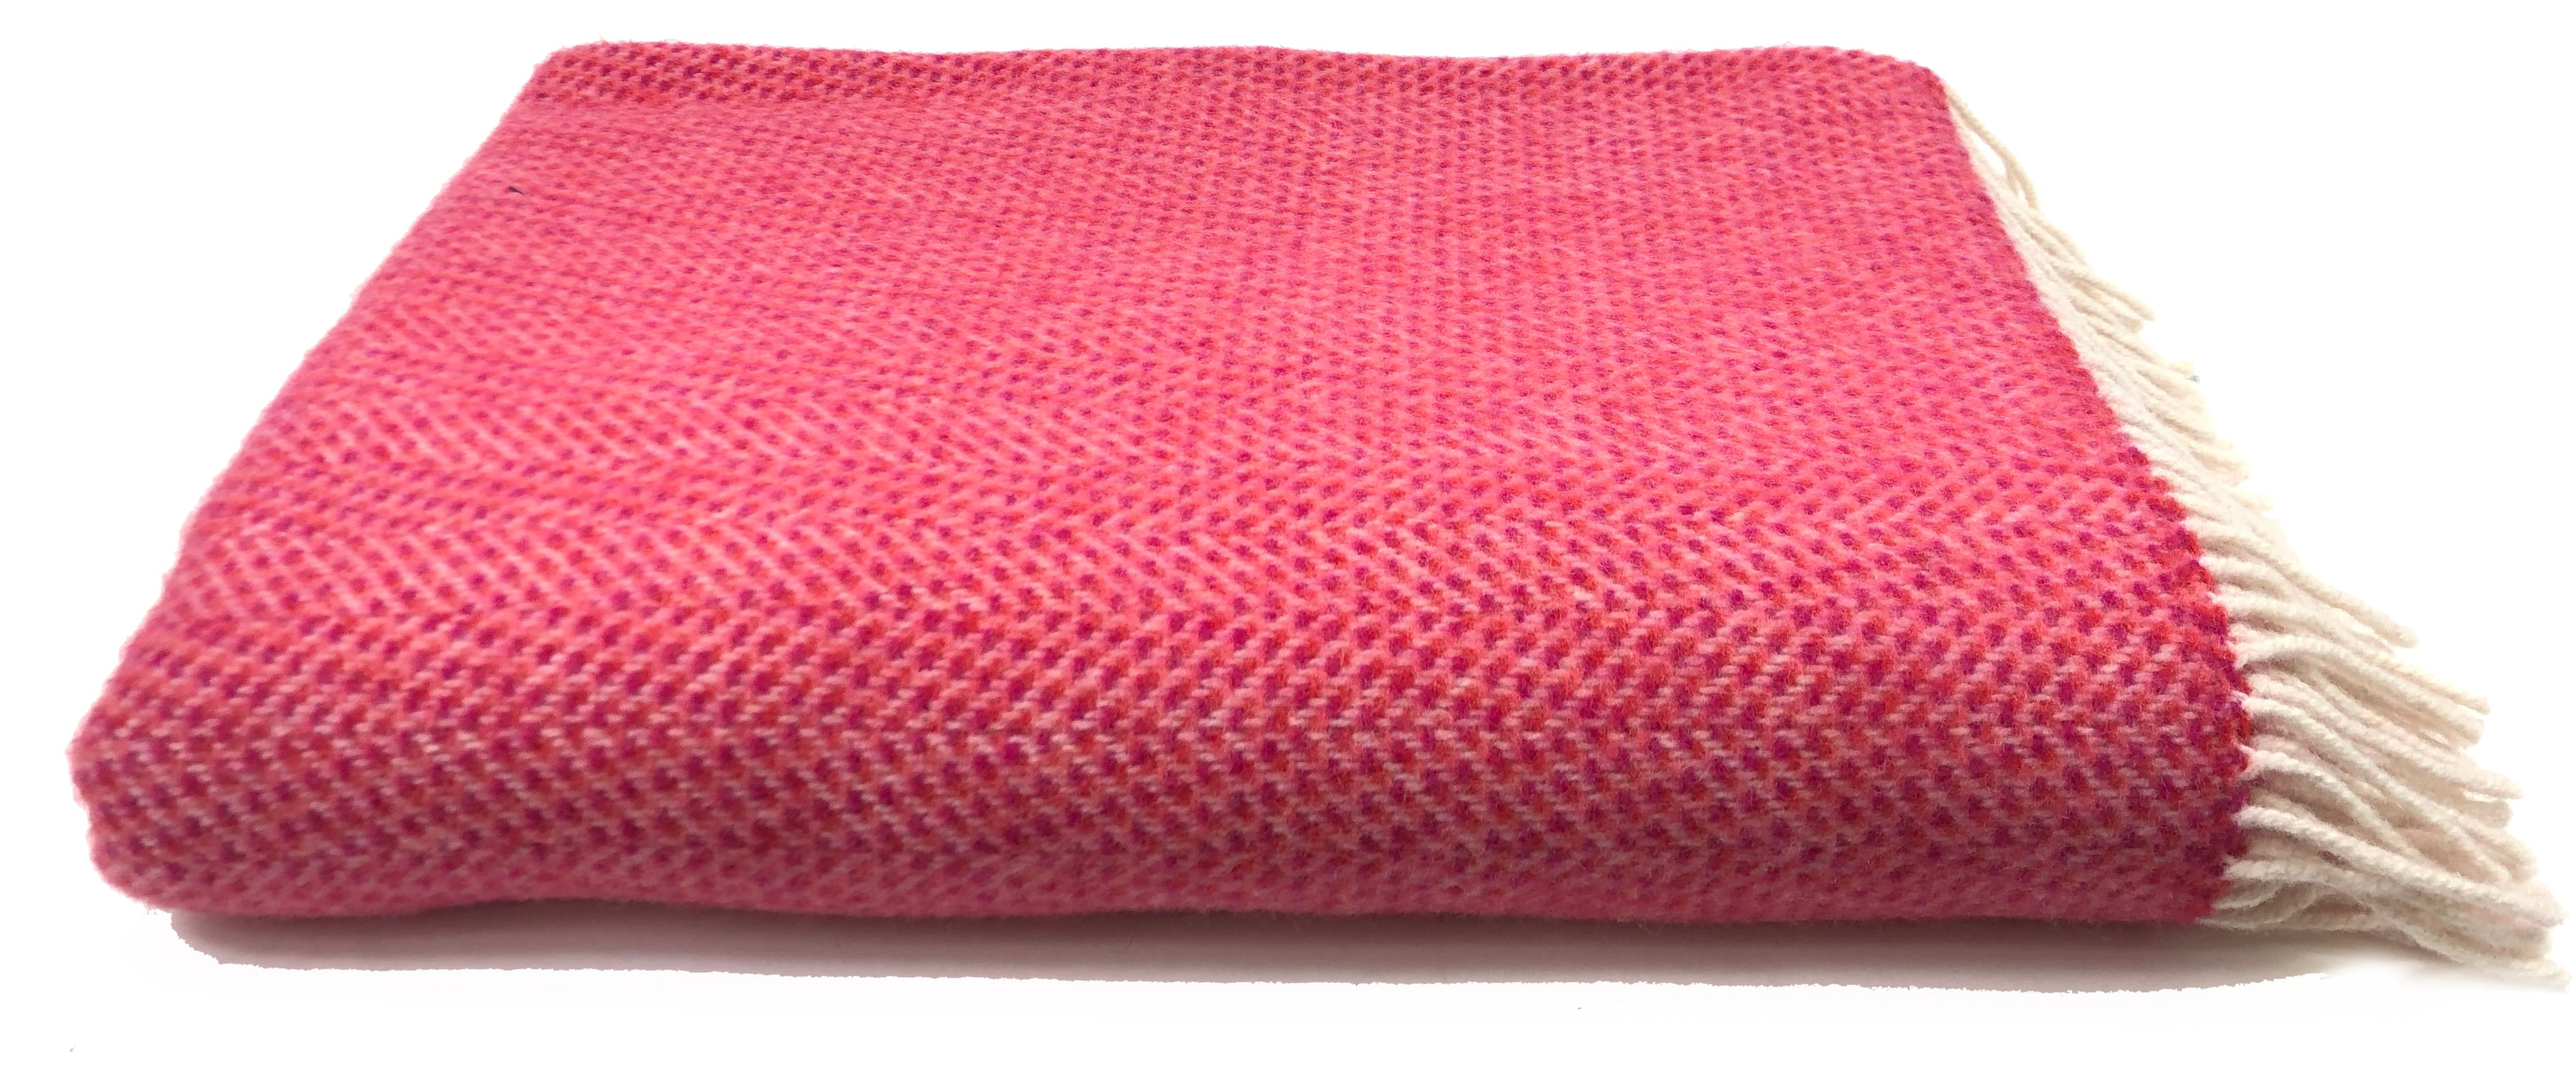 Merino & Cashmere Throw | Raspberry and Cream Herringbone